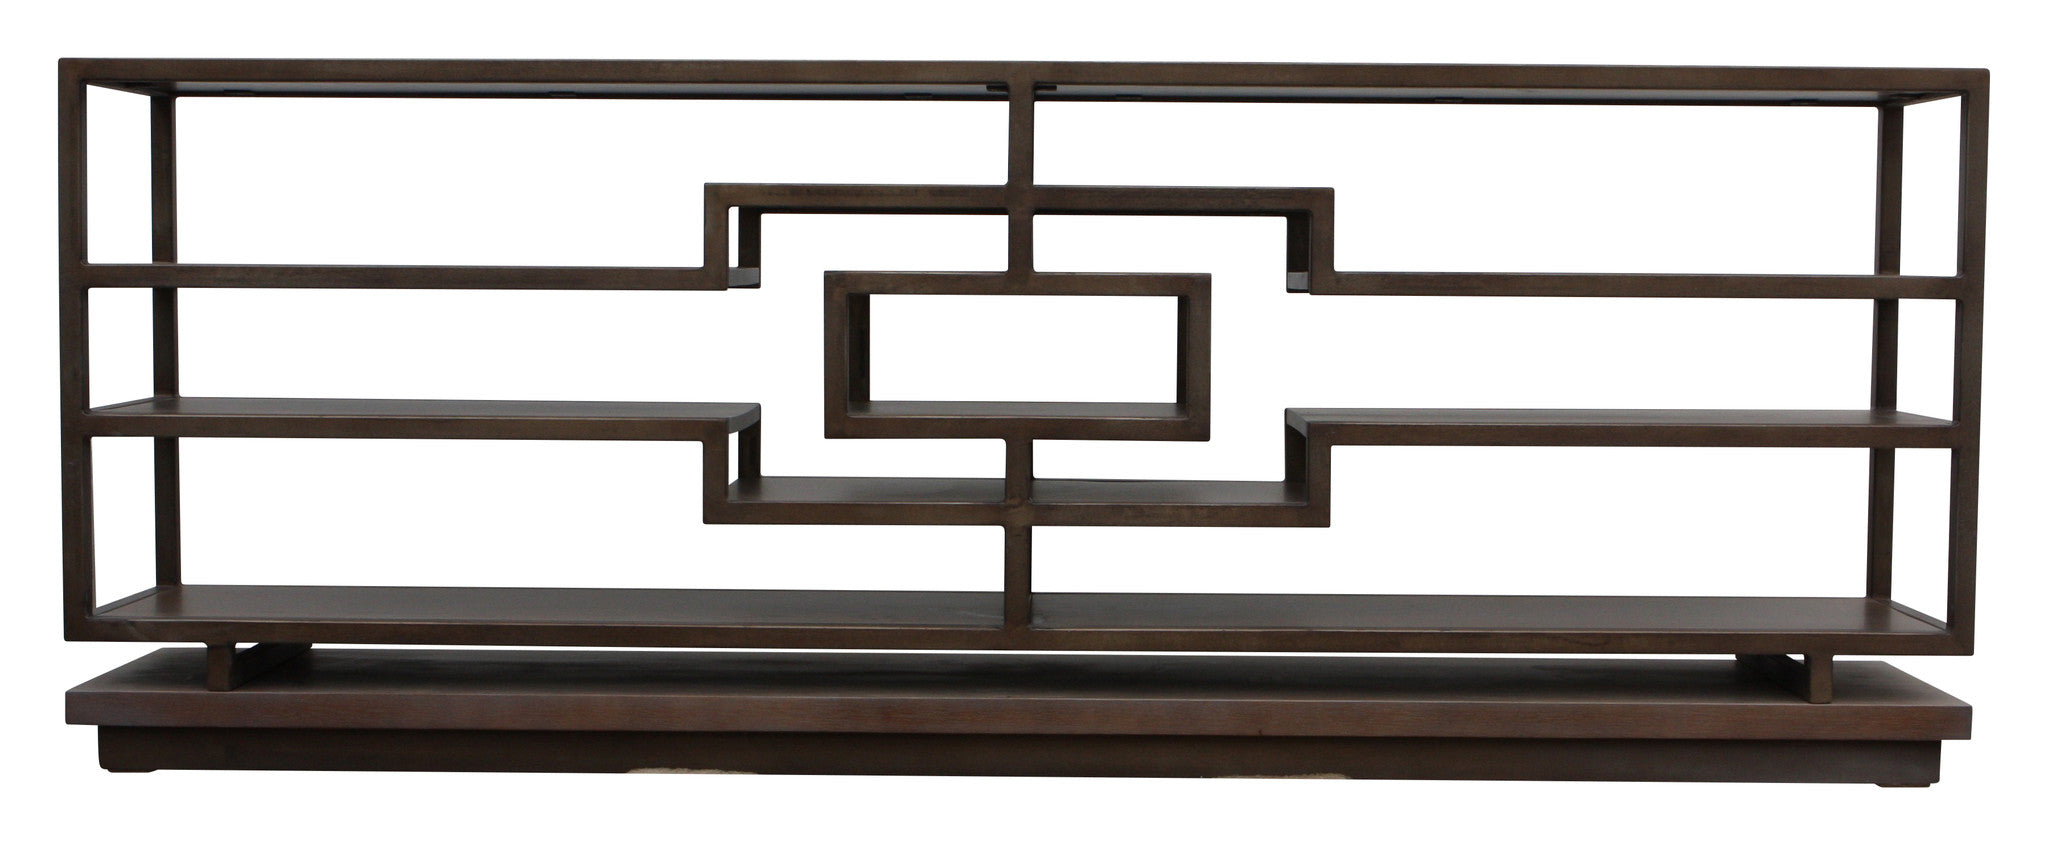 Wonderful image of  Shelves Black Metal Frames Brown Wooden And Wood Splendid Ideas Of Woo with #342B24 color and 2048x845 pixels